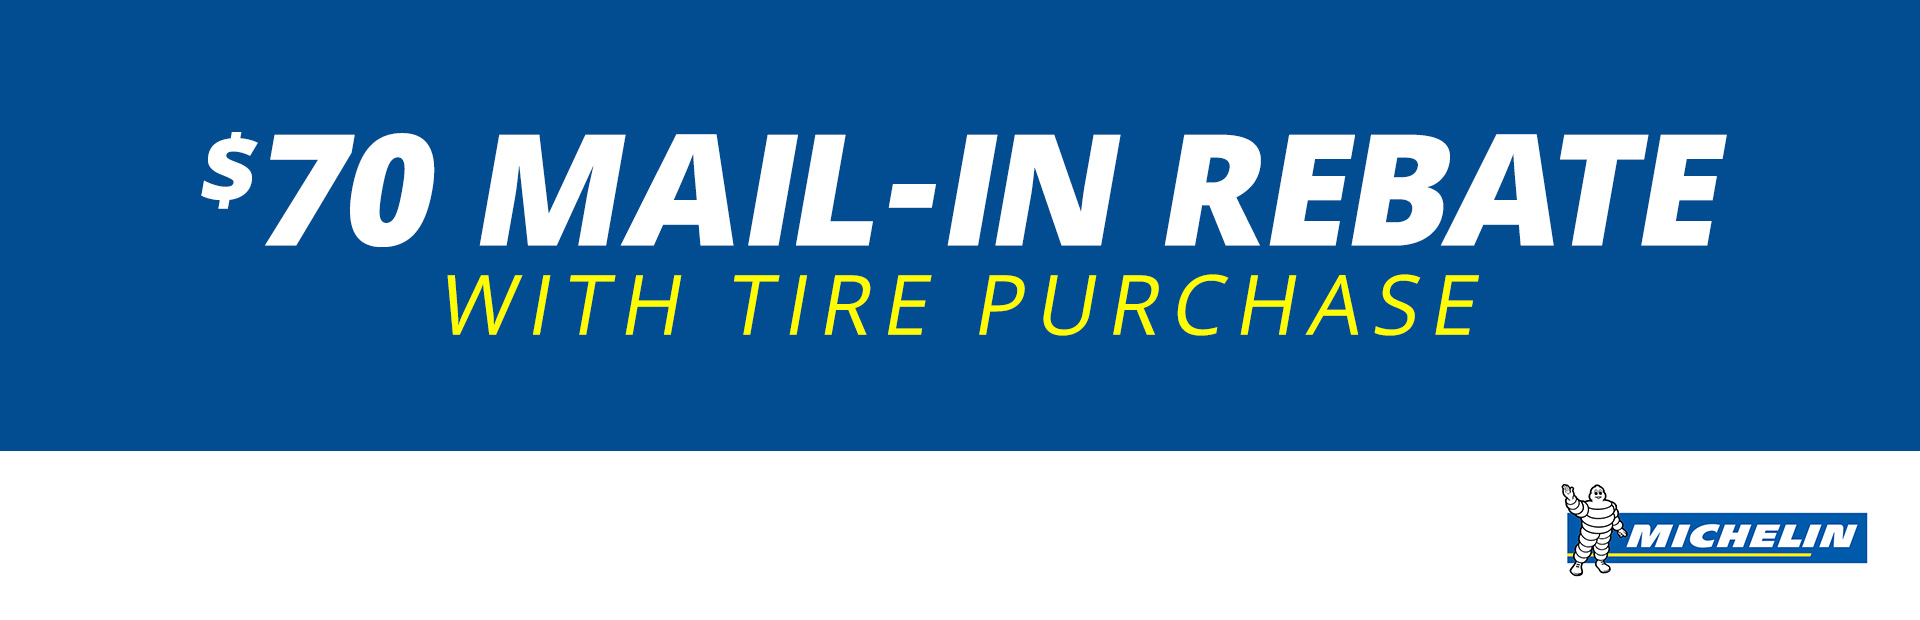 $70 Mail-In Rebate with Tire Purchase